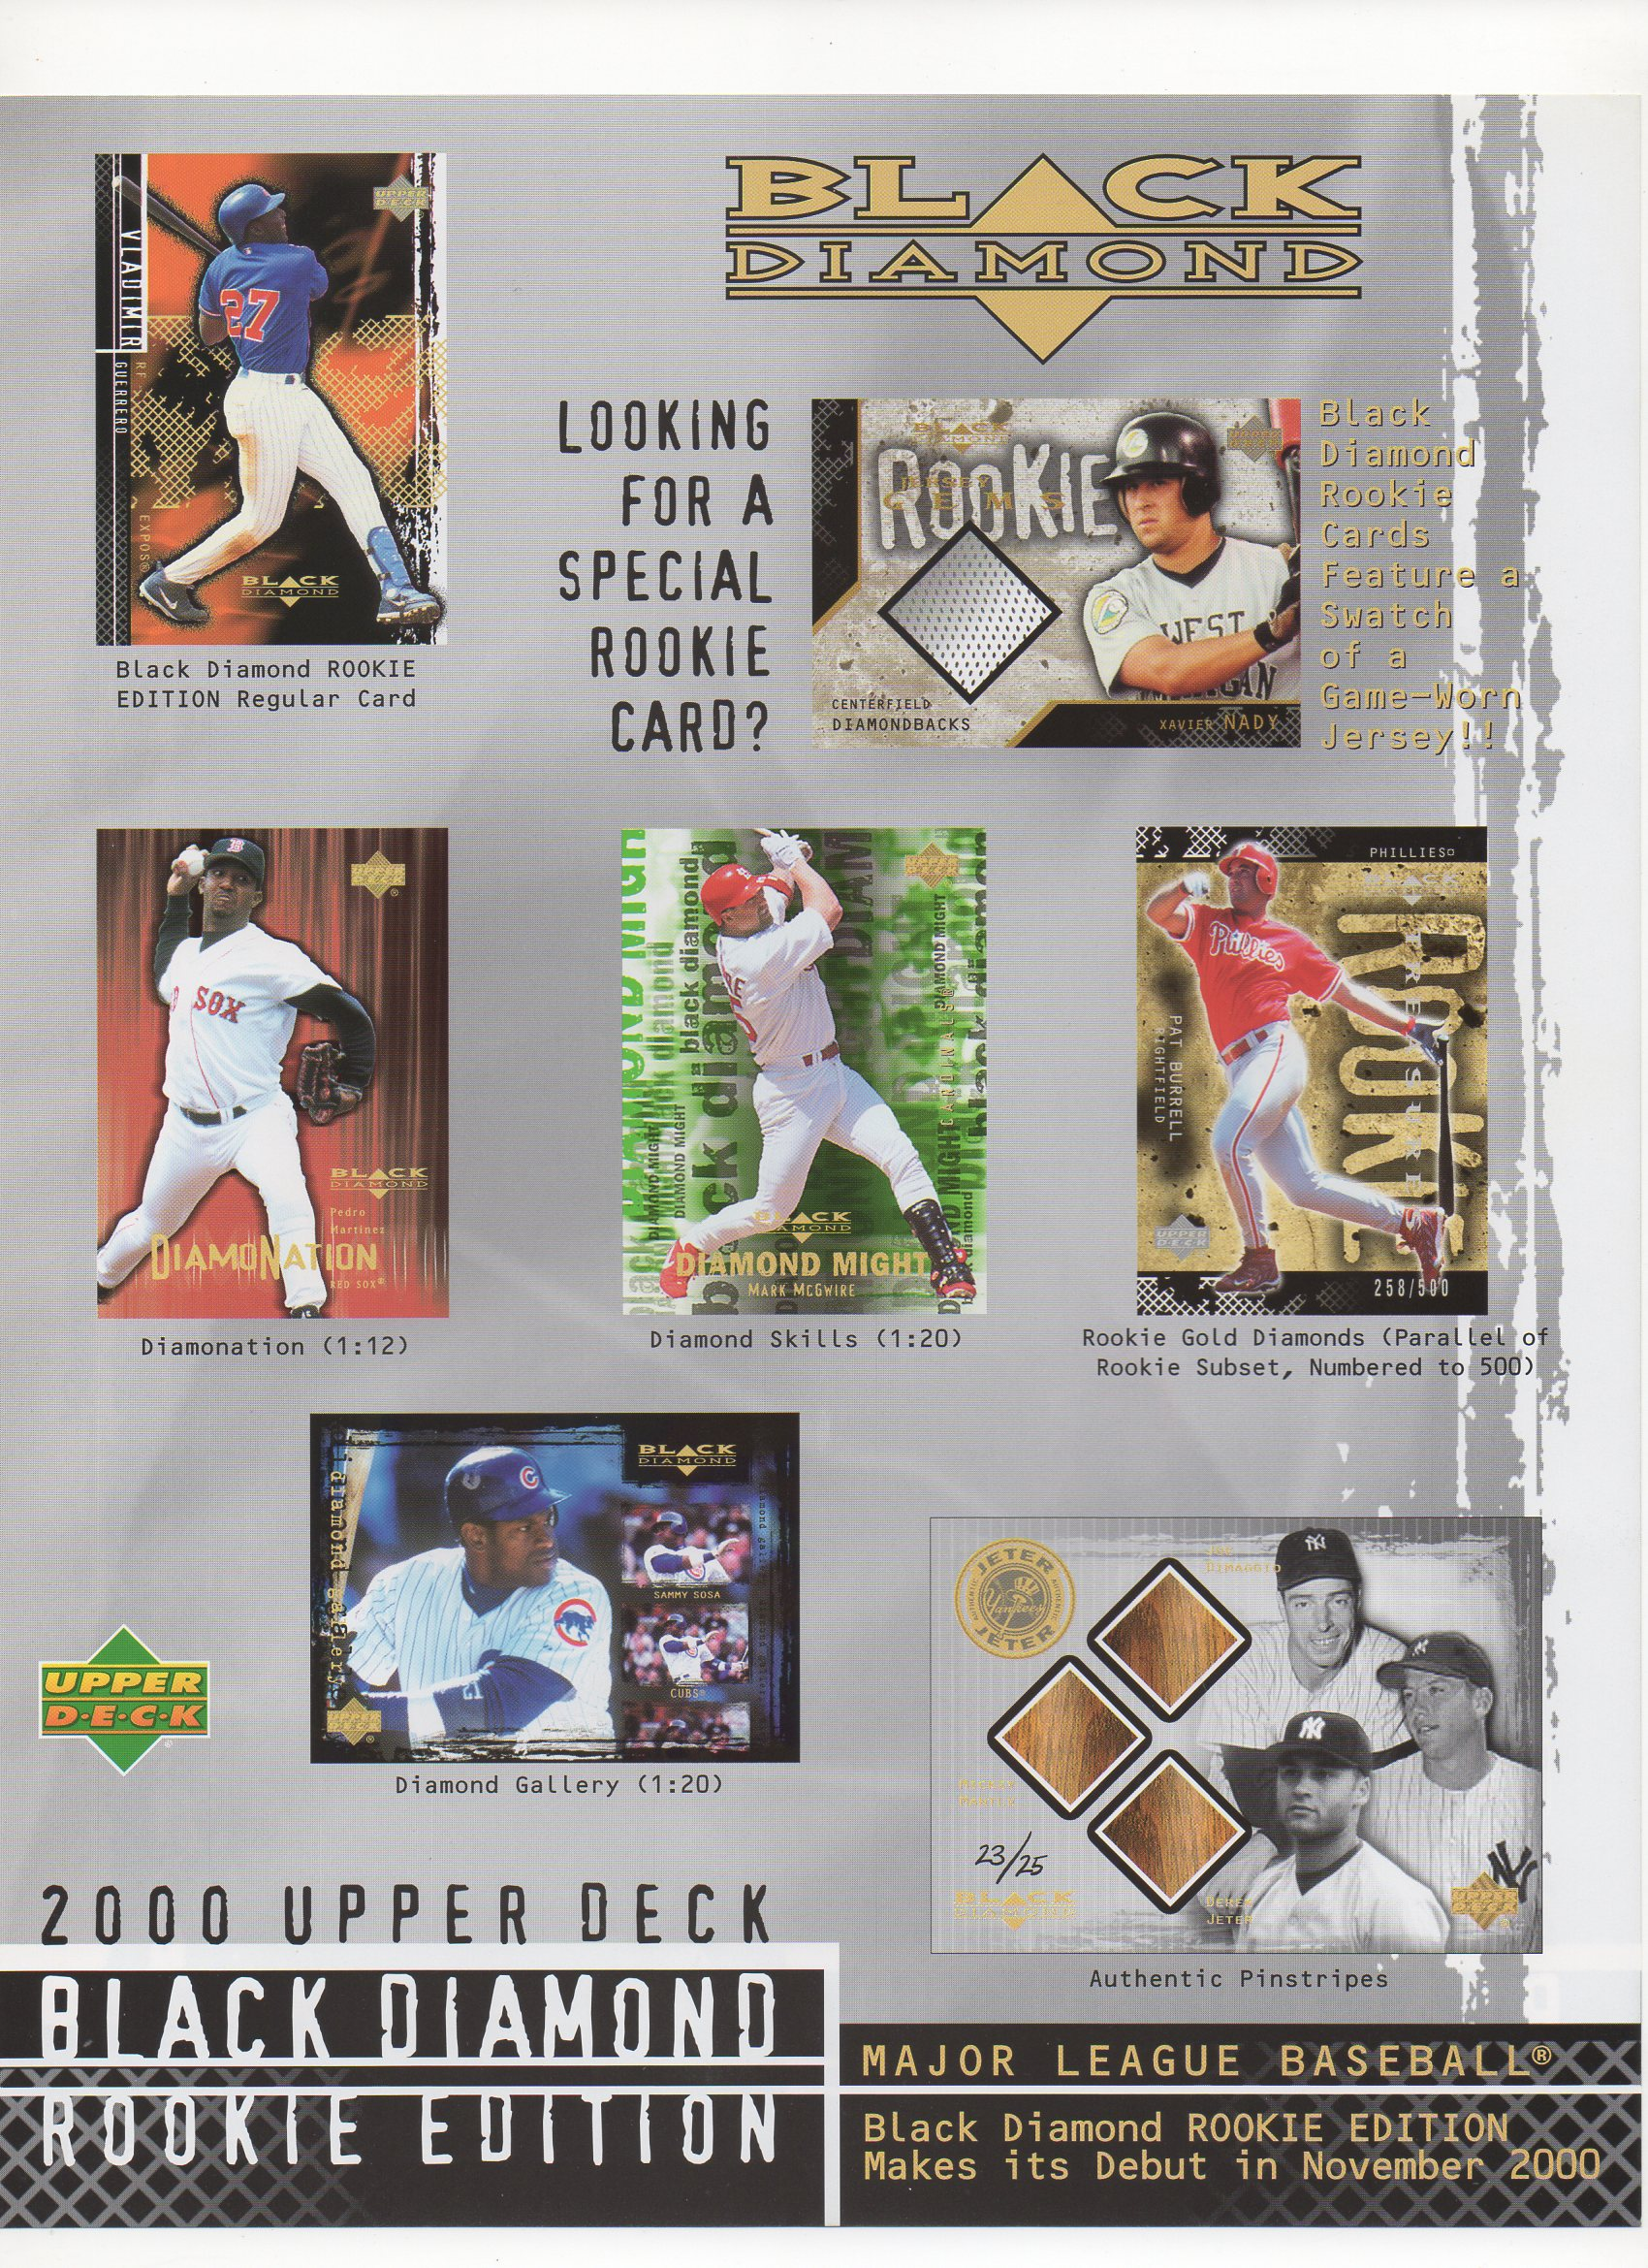 2000 upper deck flyer two sided